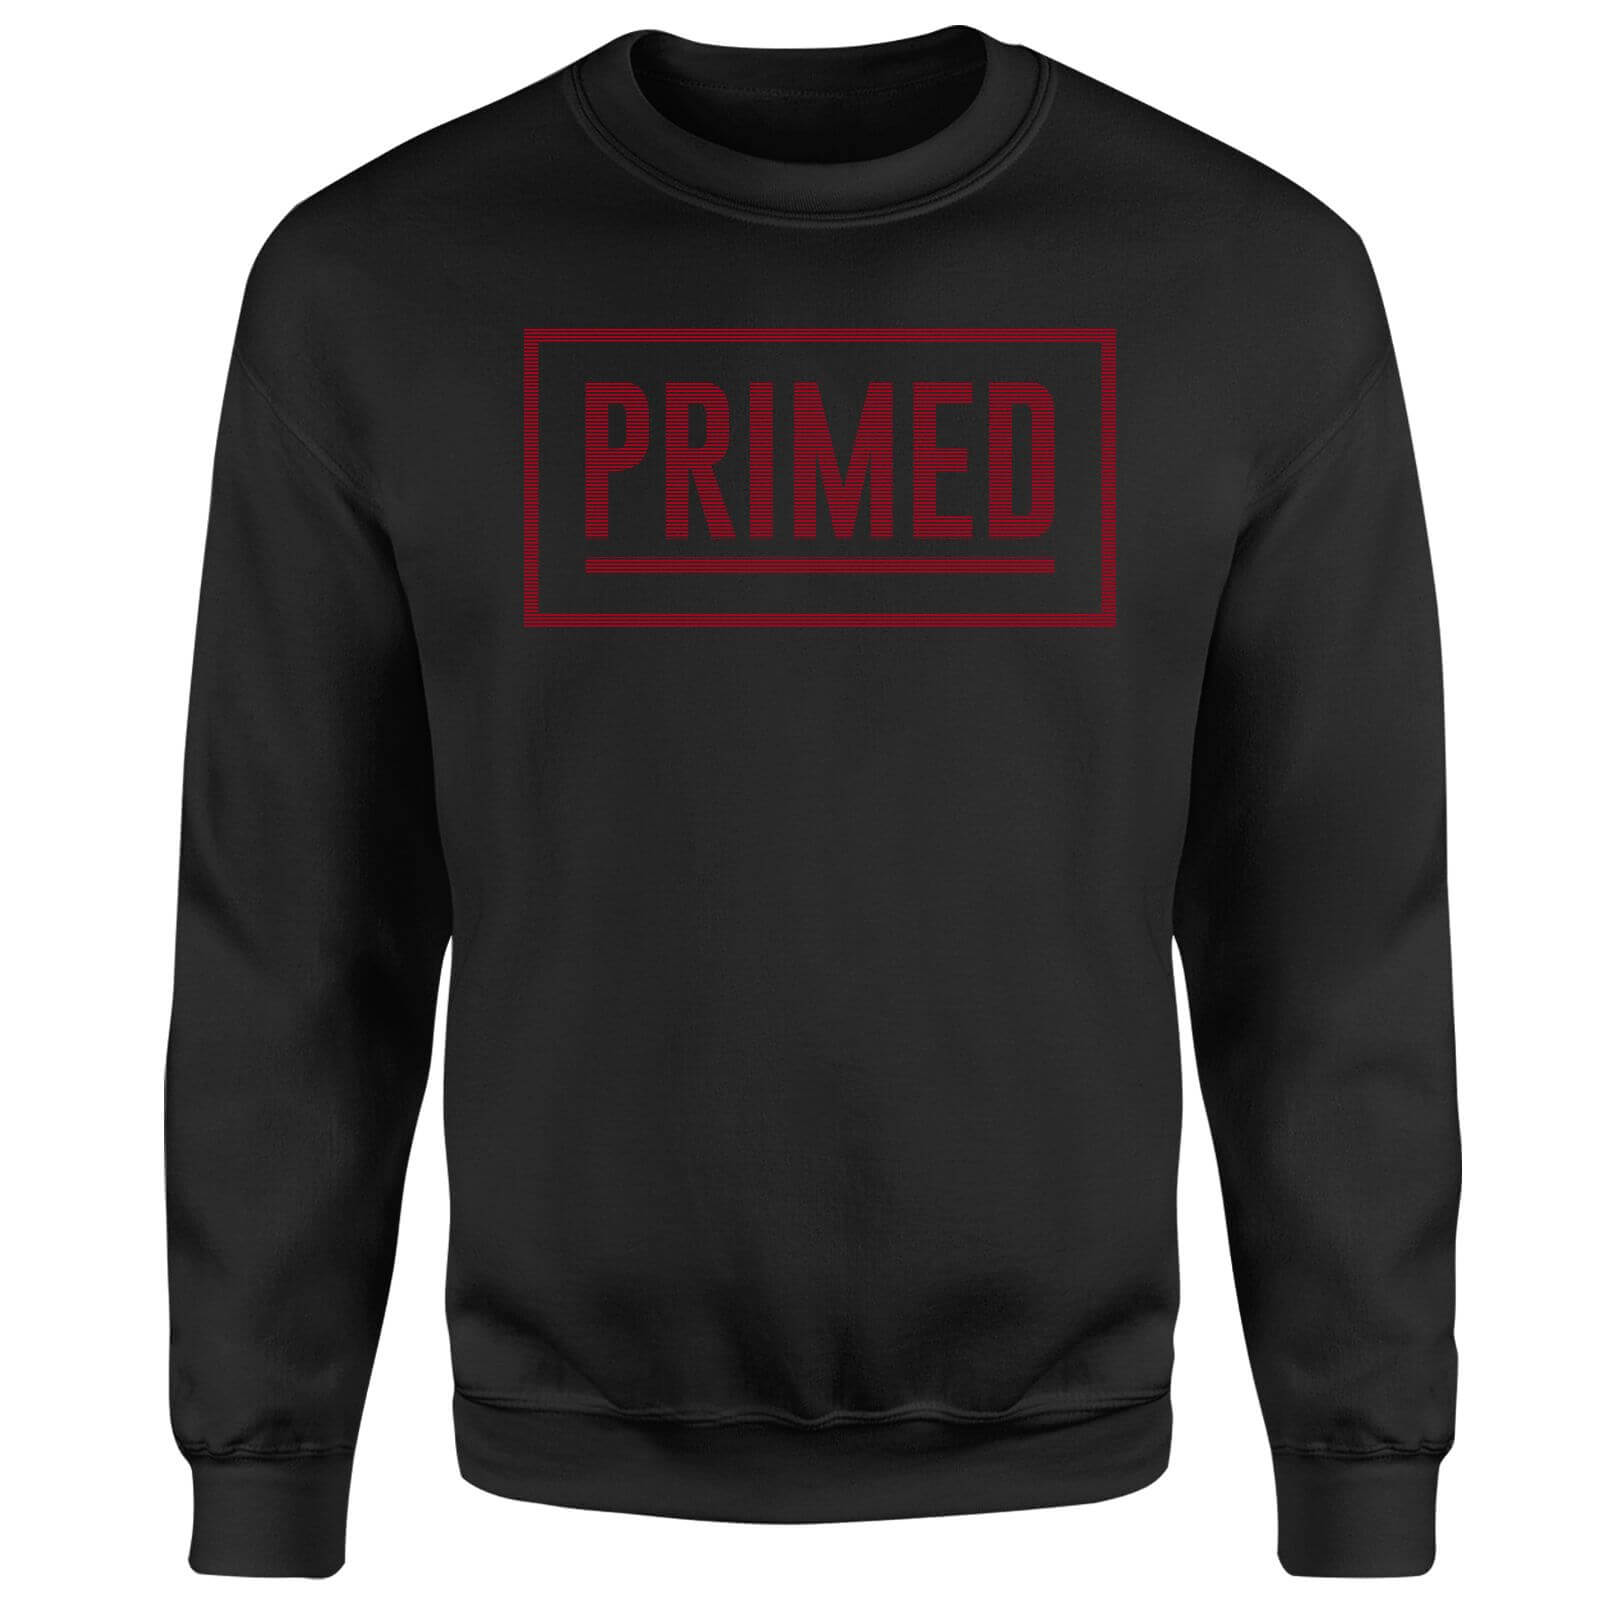 Primed Boxed Logo Sweatshirt - Black